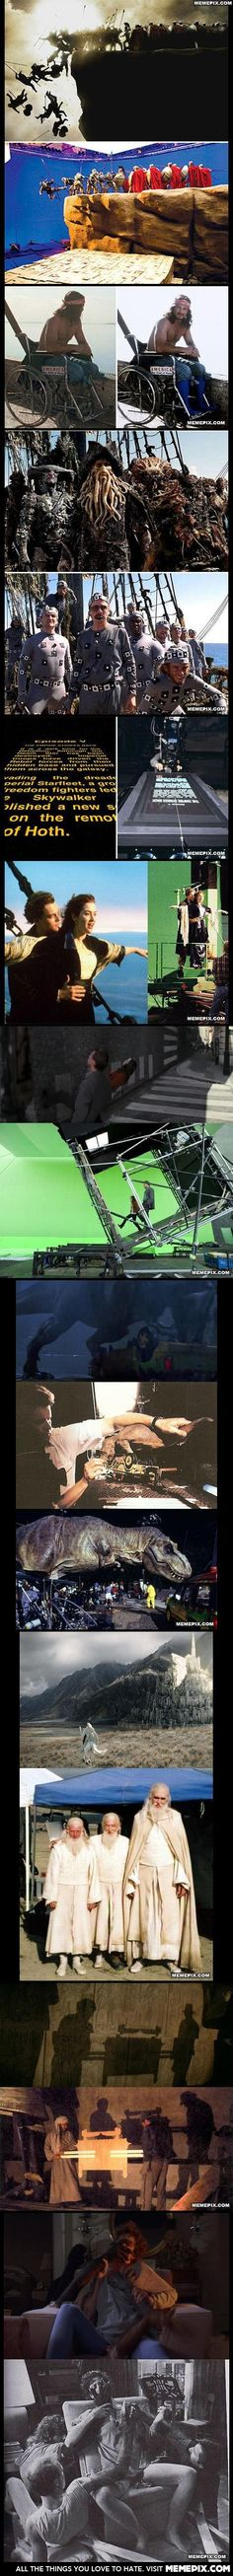 Special Effects In Classic Movie Scenes